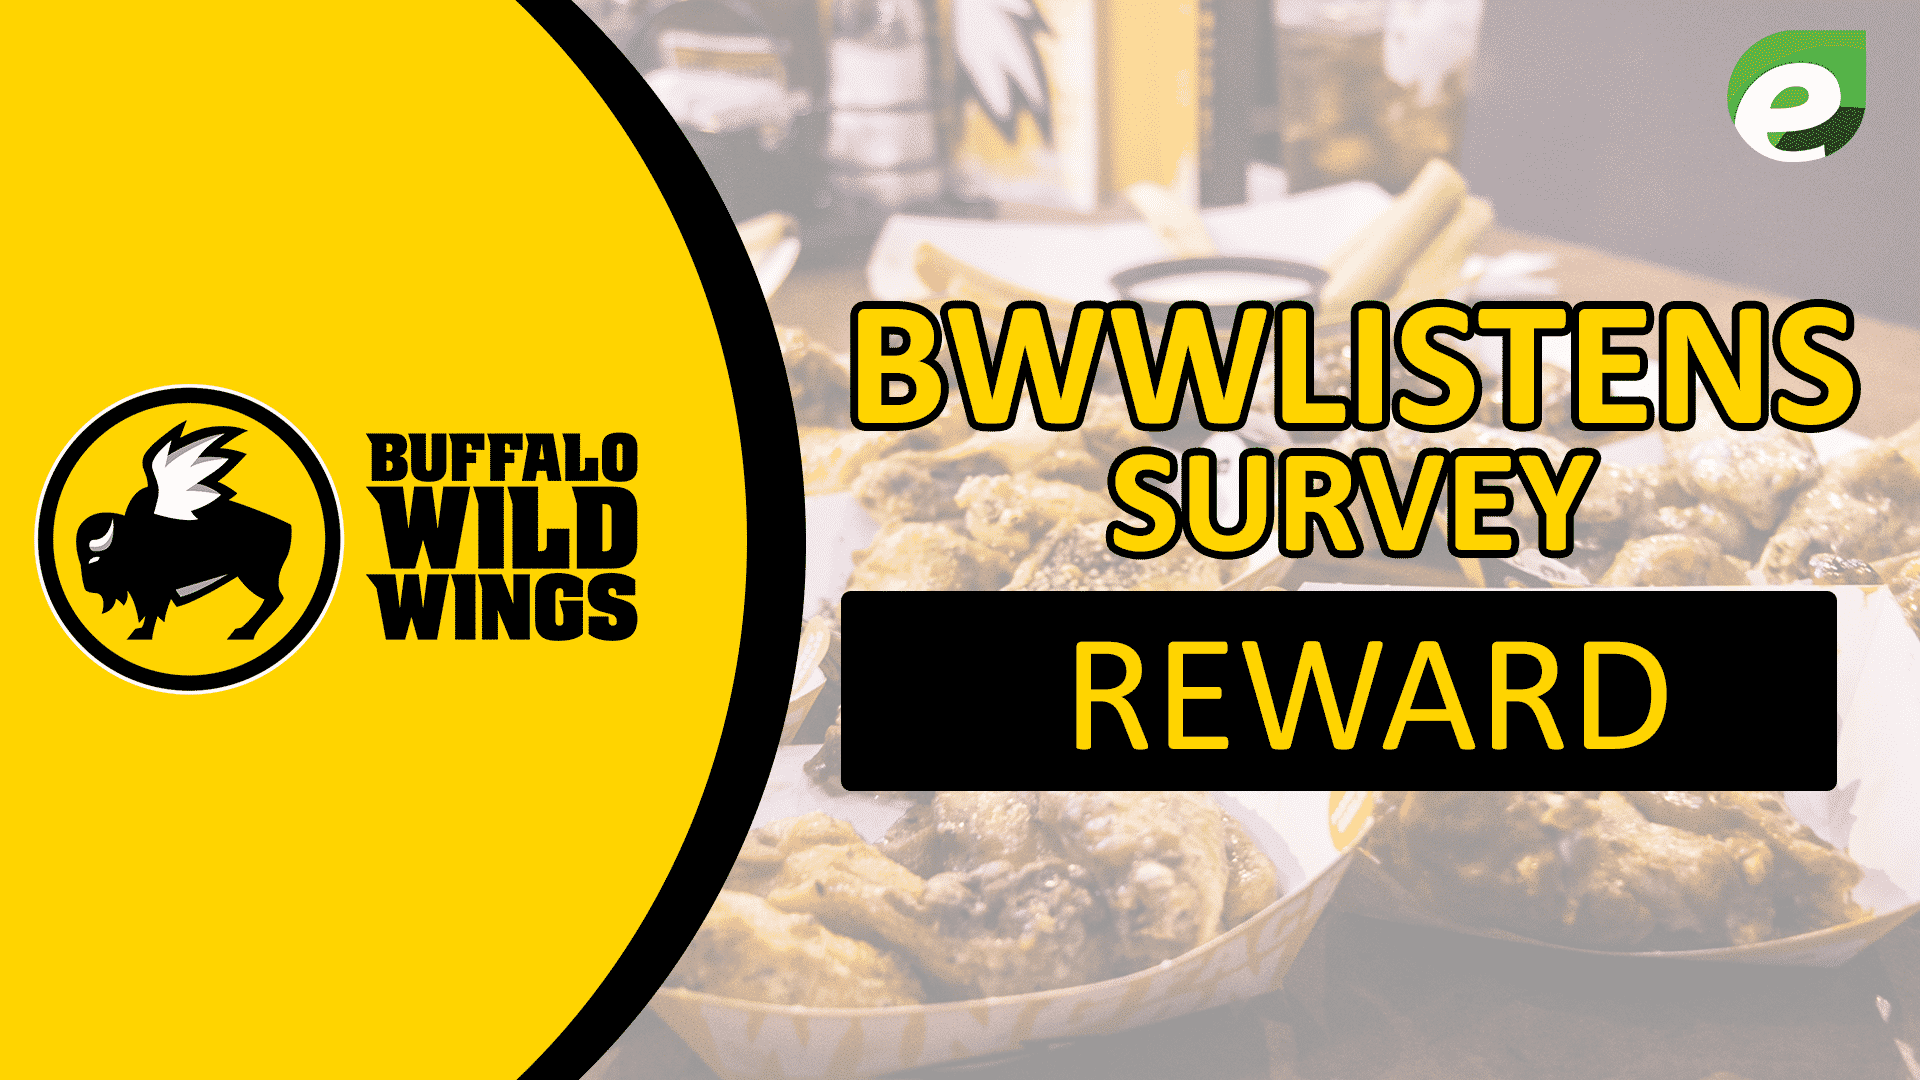 Bwwlistens survey